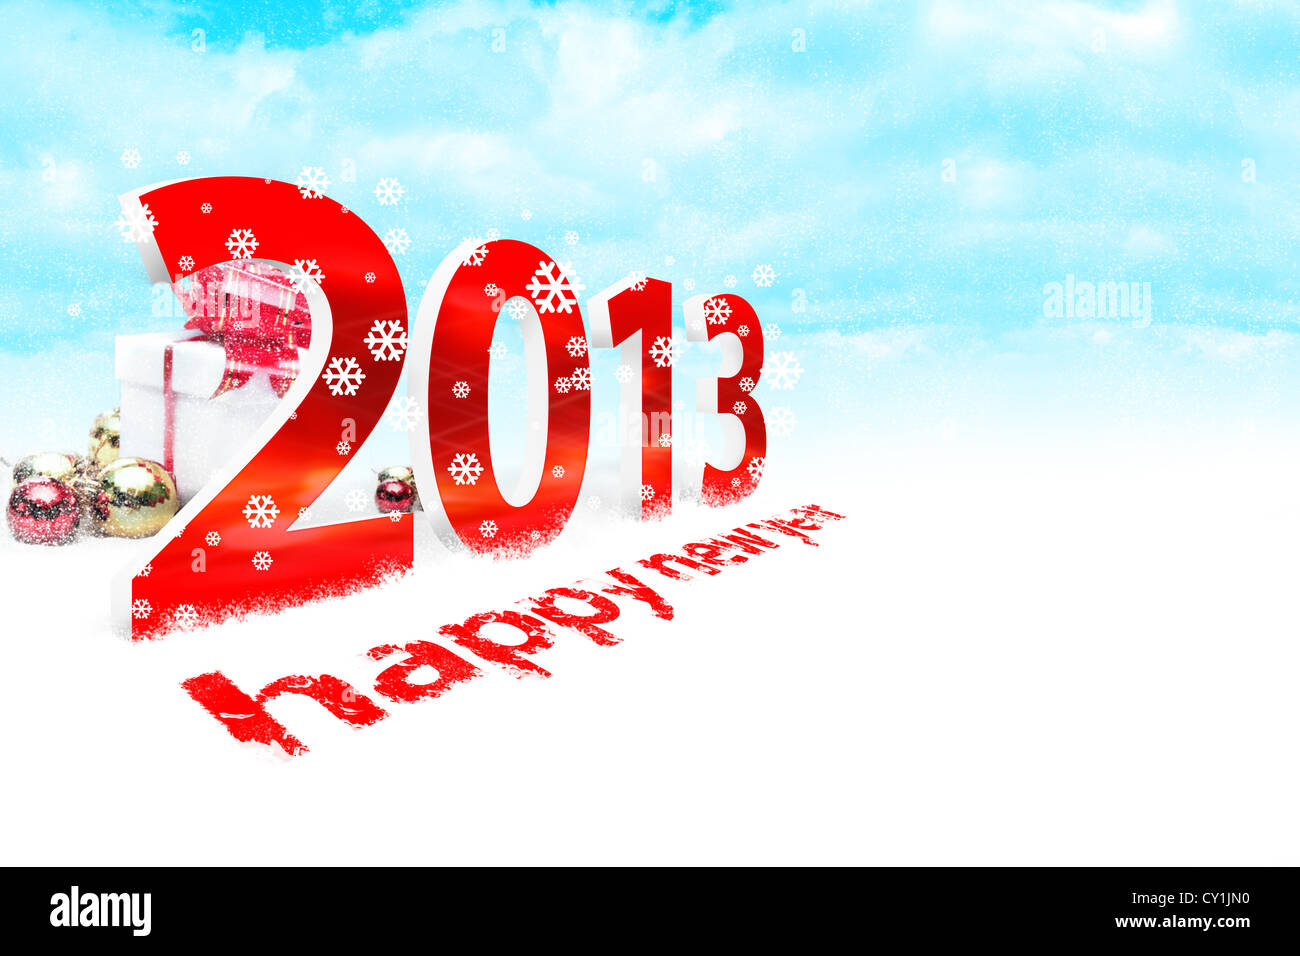 Illustration of the new year 2013 with snow - Stock Image